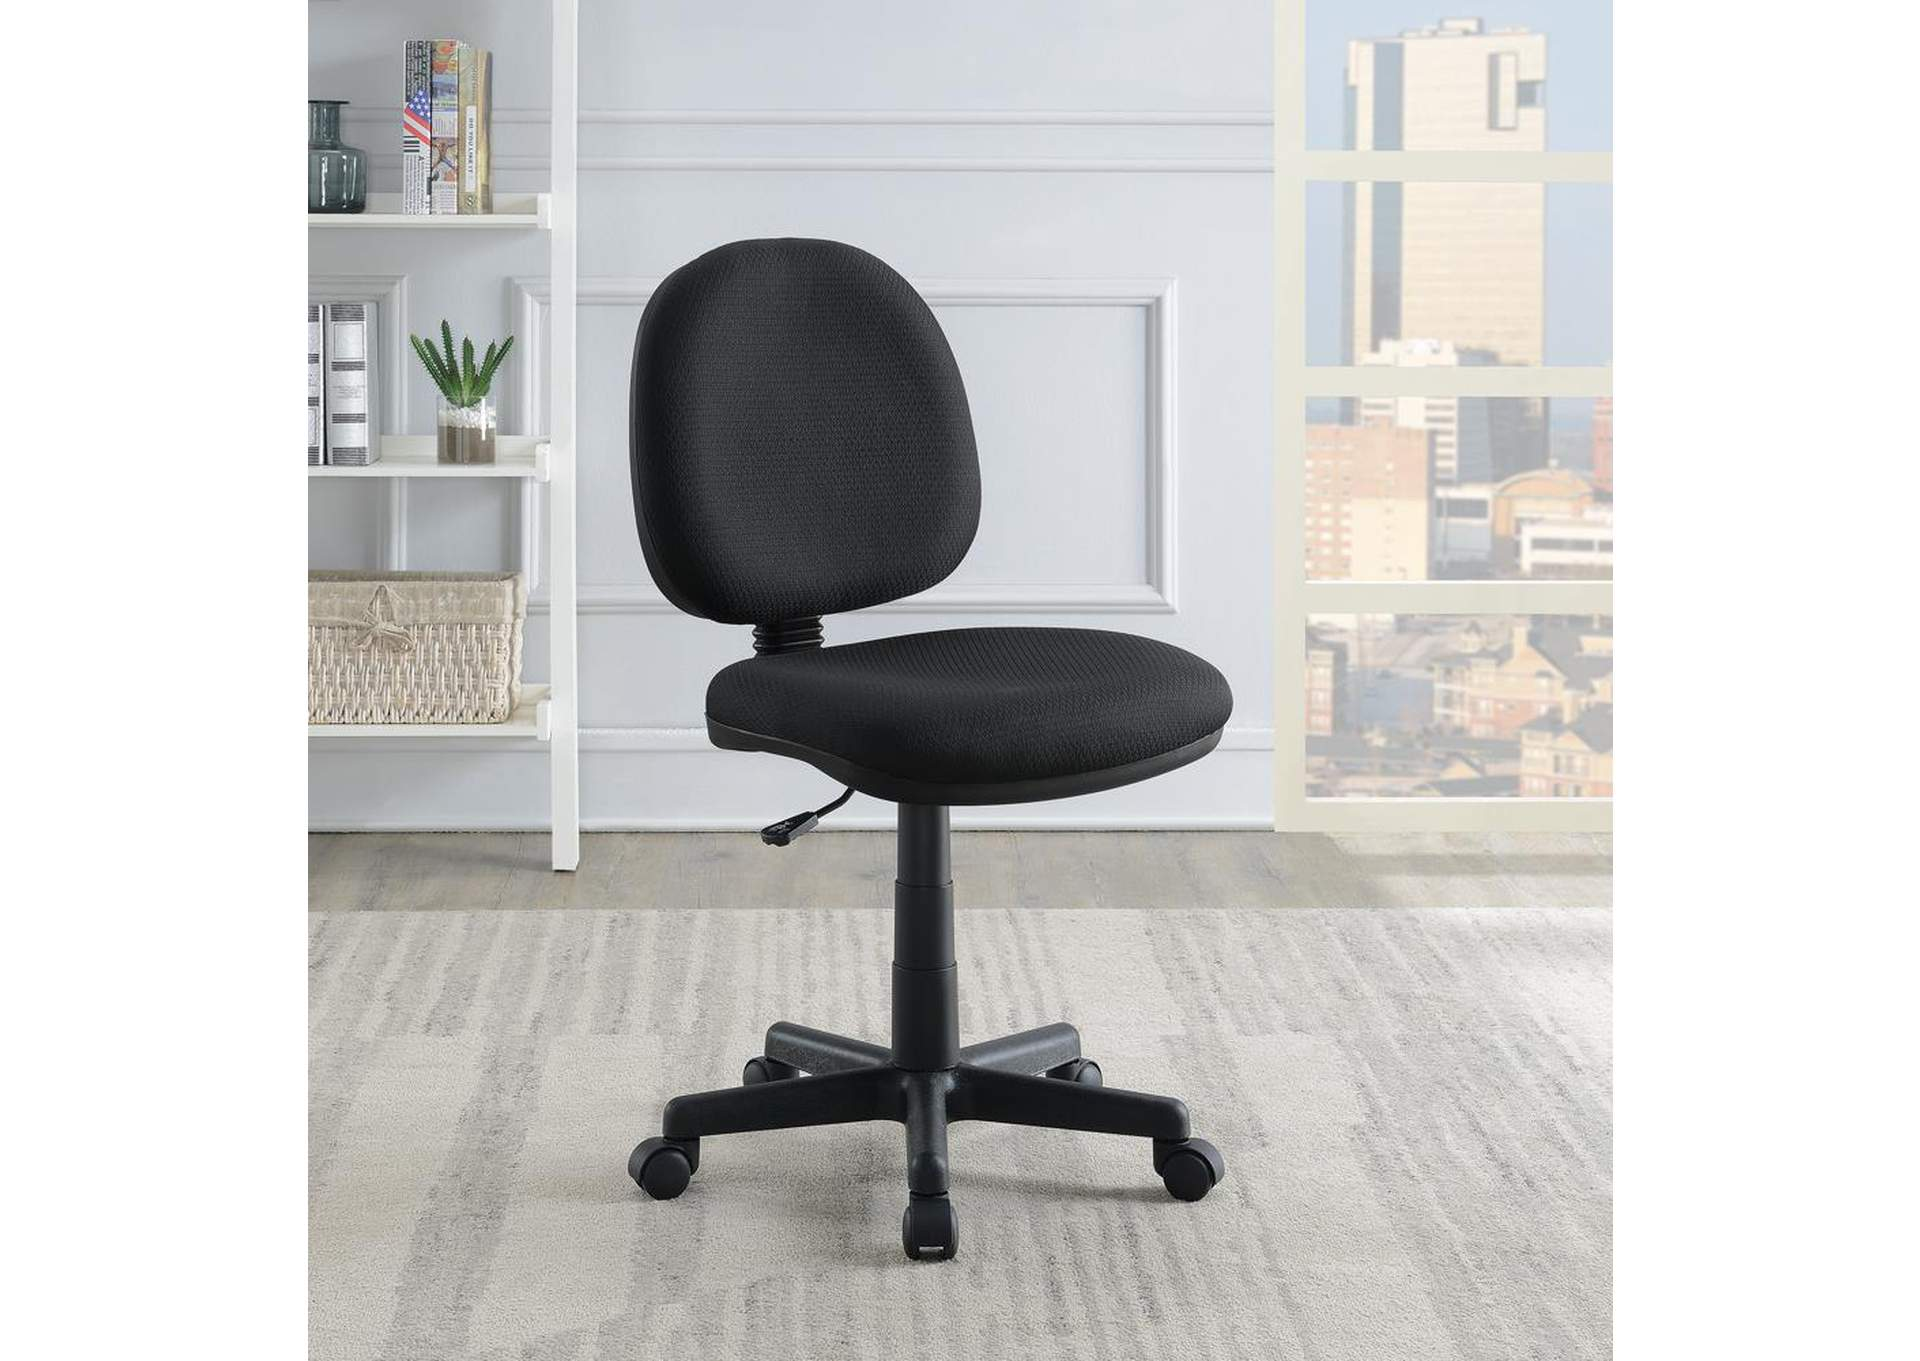 Black Office Chair w/Wheels,Coaster Furniture